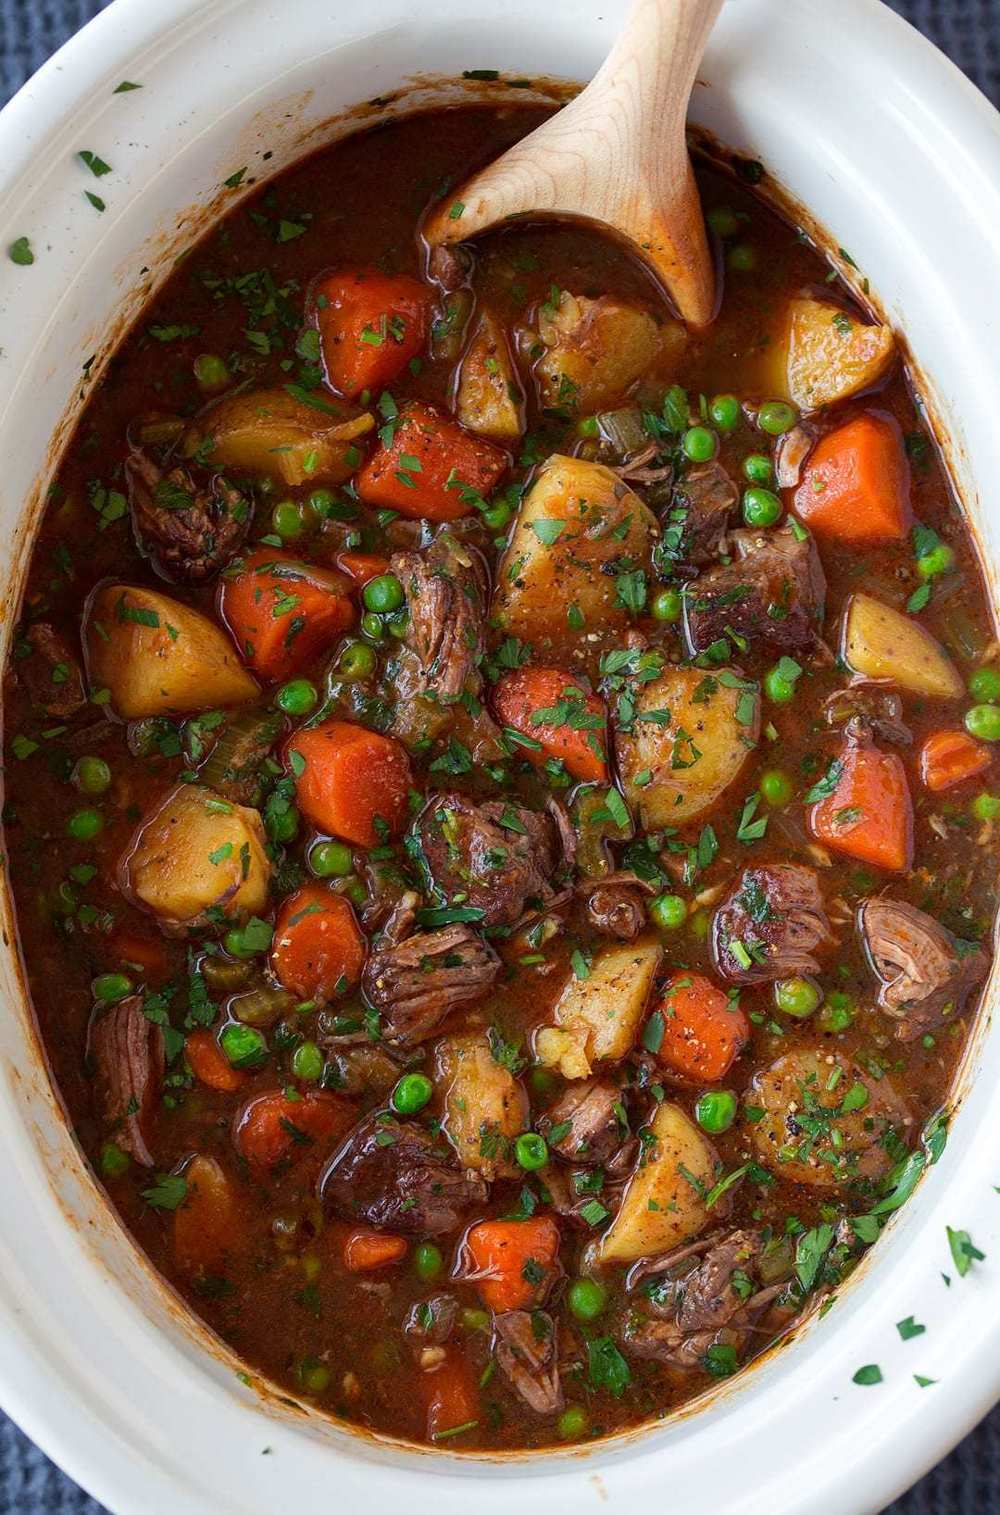 Slow Cooker Beef Stew of Kelly Barton - Recipefy